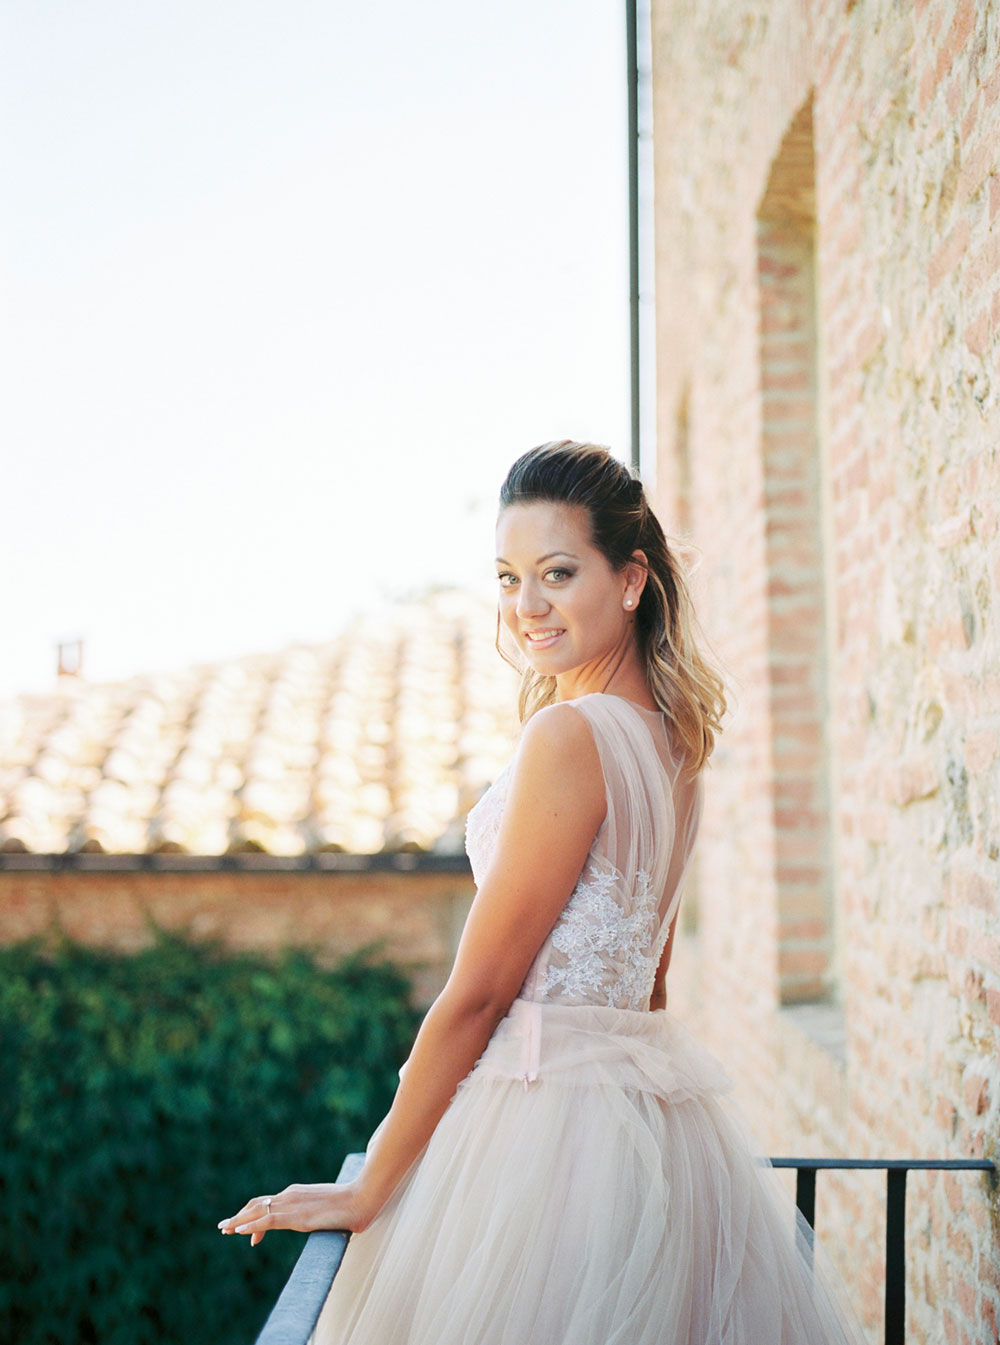 Linari-Tuscany-Elopement-Courtney-Michaela-80